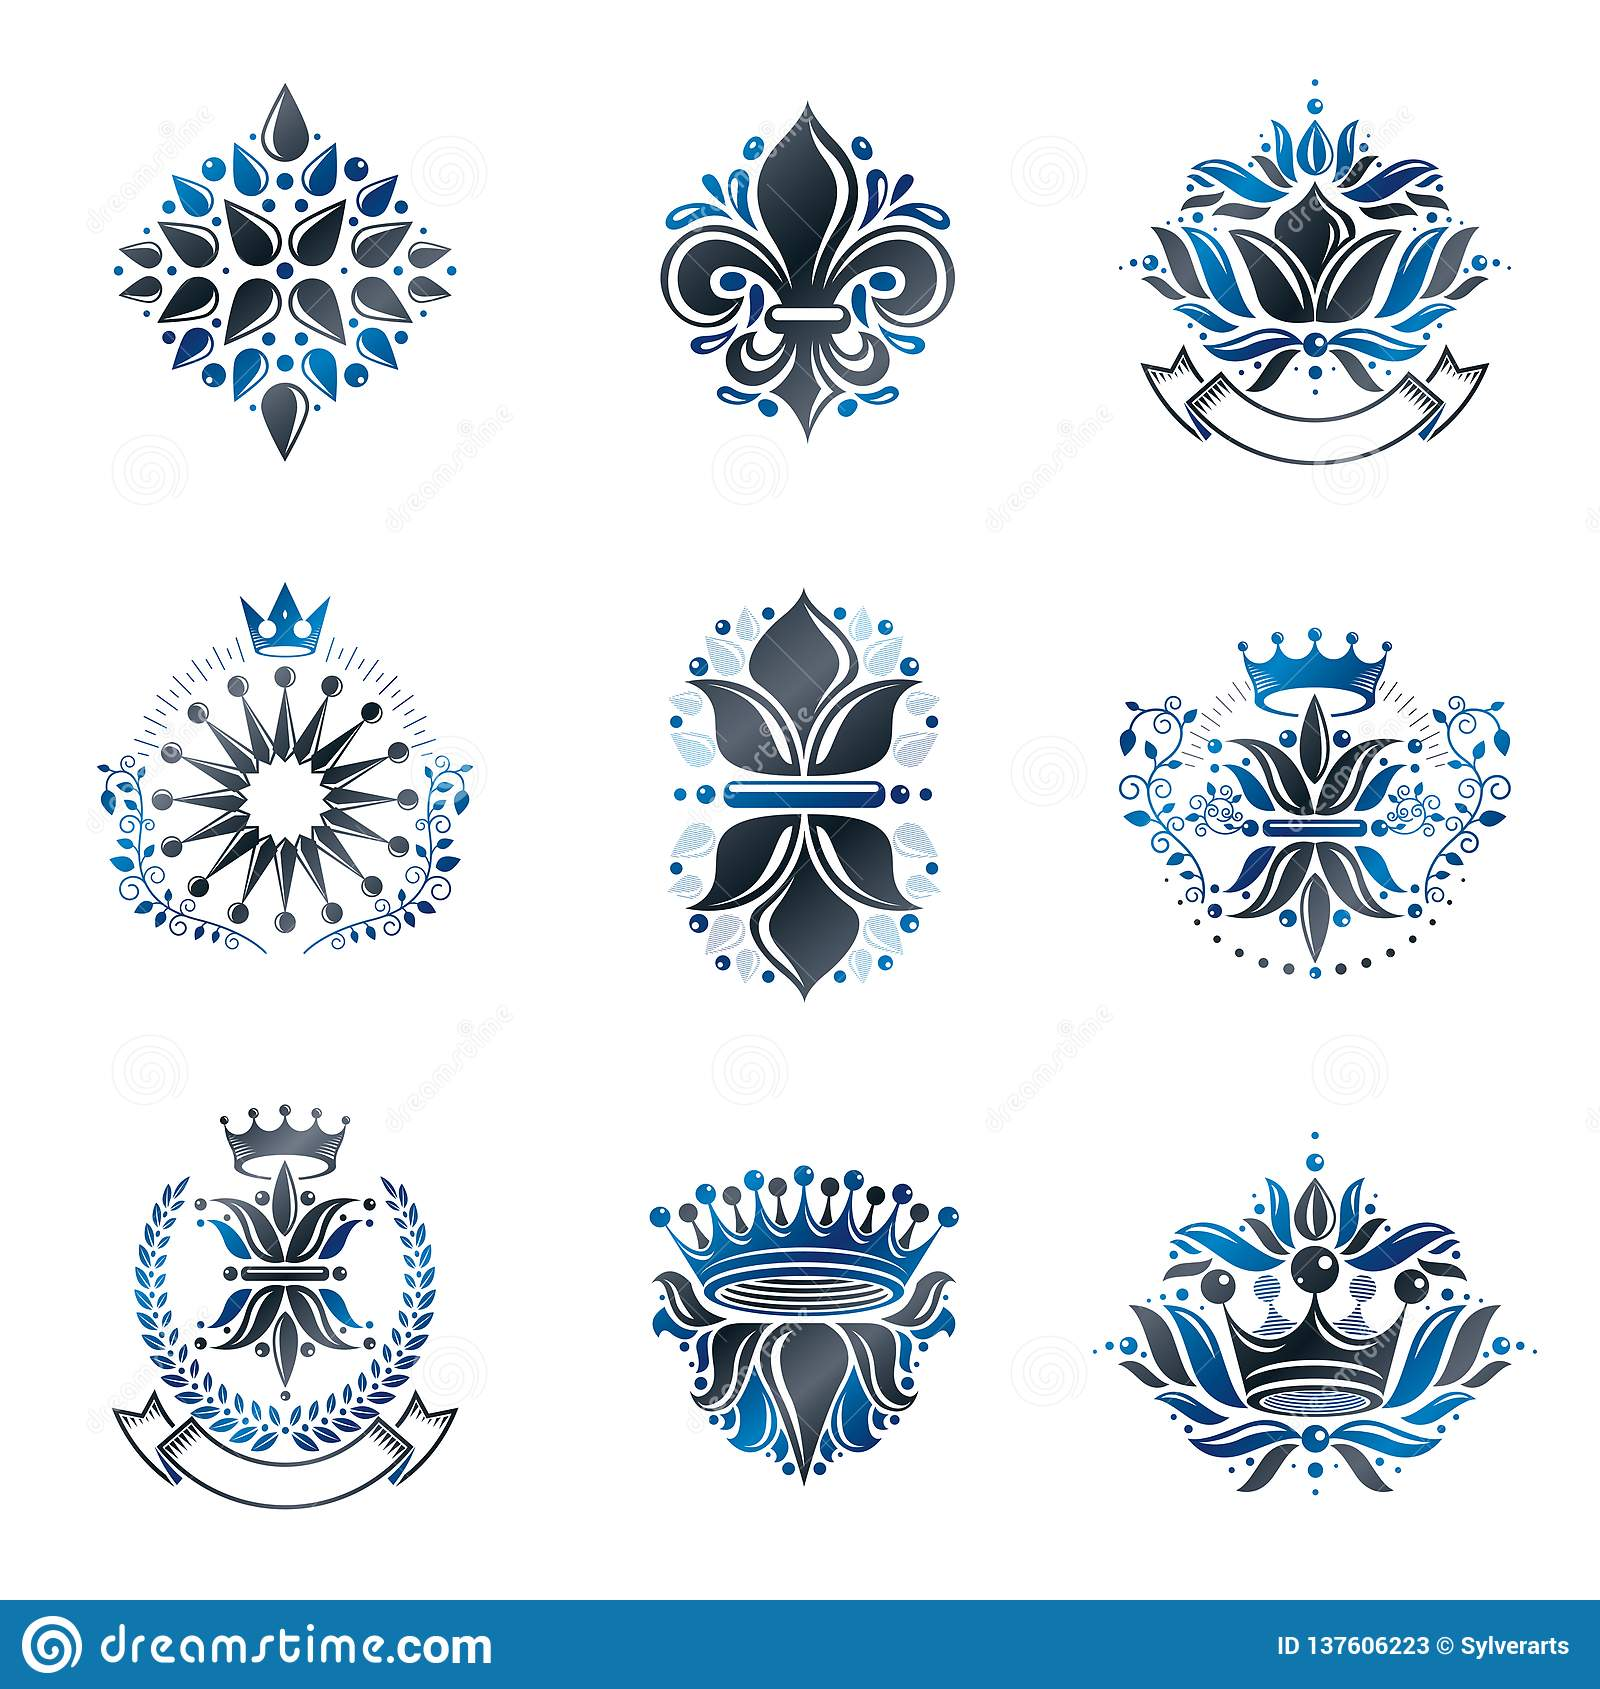 Flowers, Royal symbols, floral and crowns, emblems set. Heraldic Coat of Arms decorative logos isolated vector illustrations